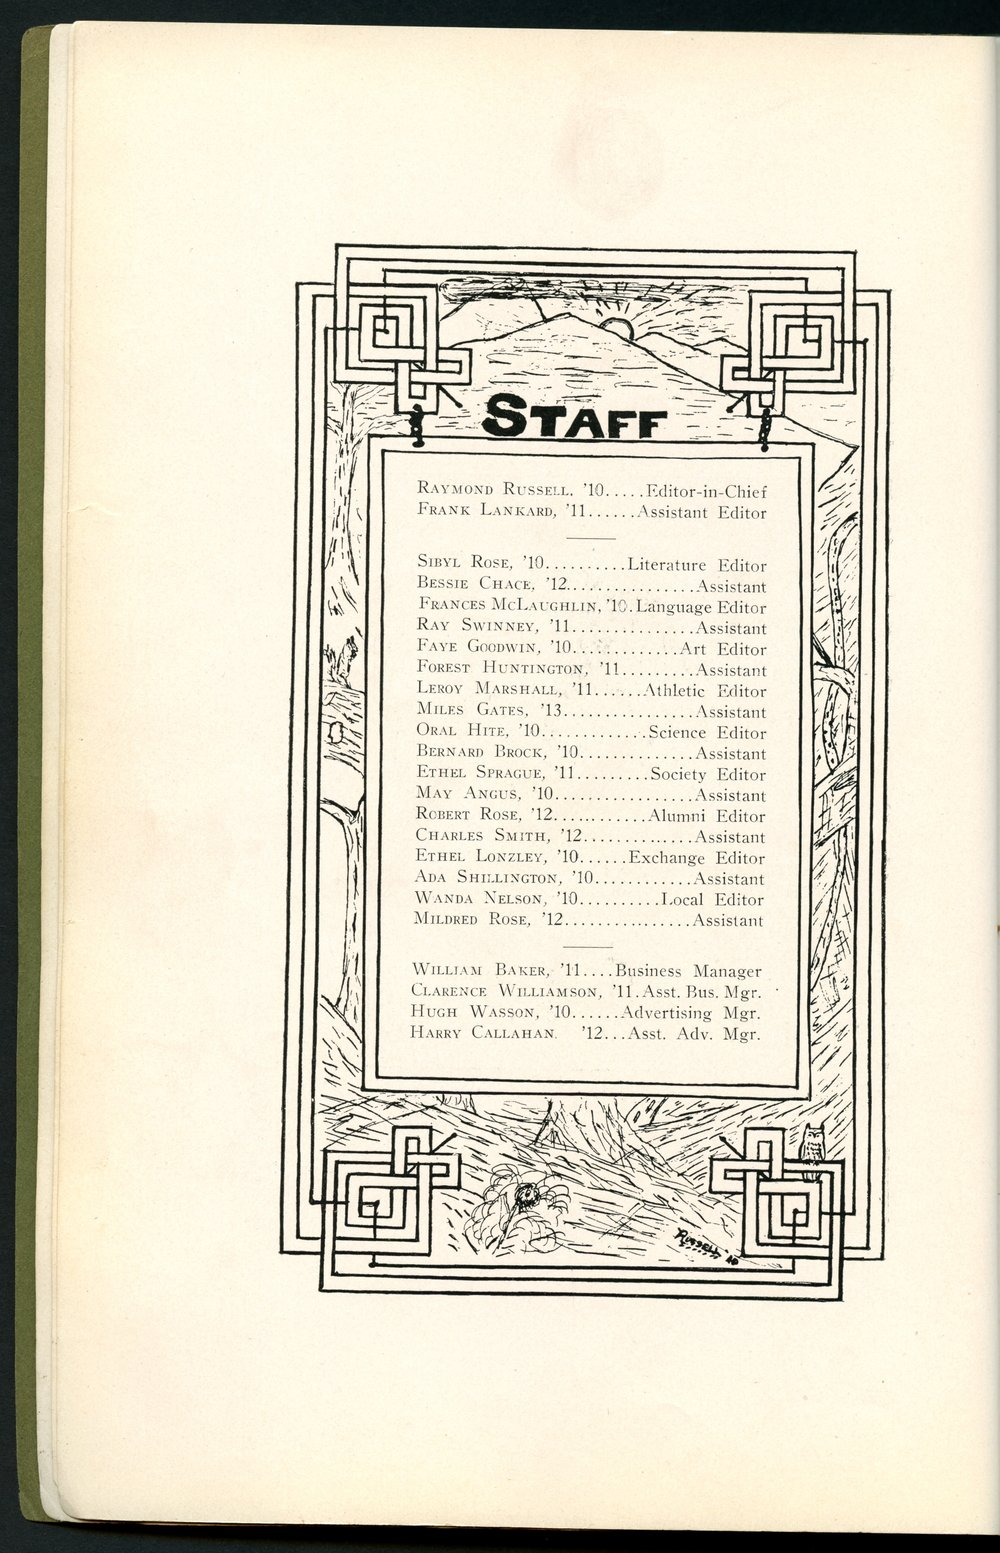 Mount Marty yearbook, 1910, Rosedale, Kansas - 6